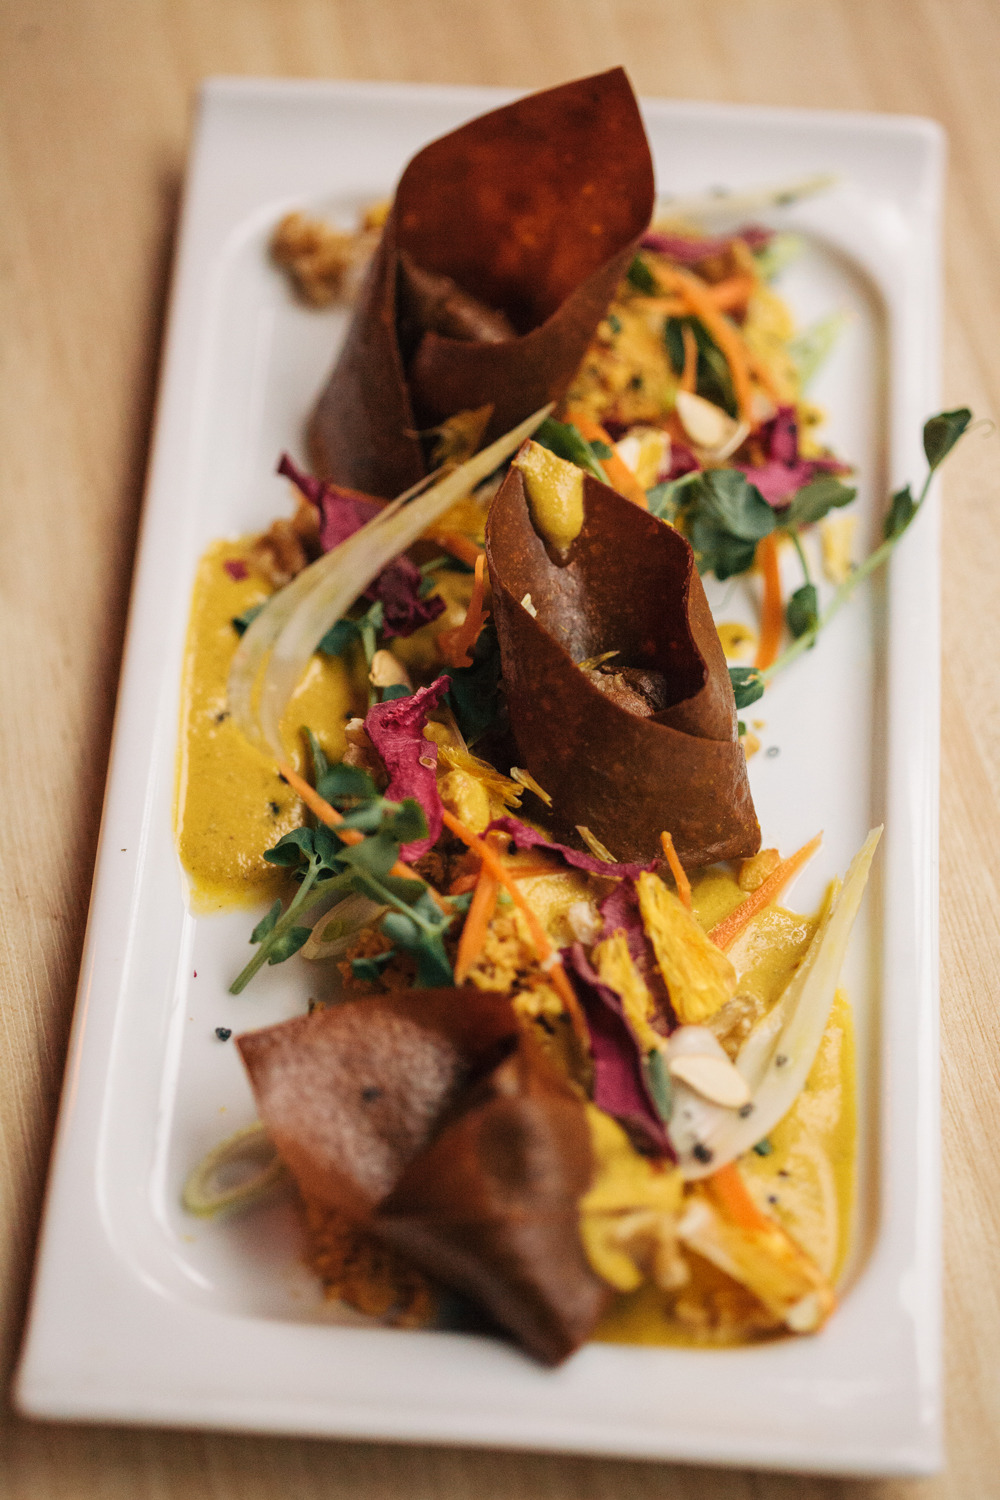 The annual   Dine Out Vancouver Festival   is almost at a close (the last day is Jan 31st), and I definitely got to try my fair share of food.  Barre Fitness tasked me with covering some of the healthier, sustainable, and of course delicious, options at some of Vancouver's best and newest establishments.  Here are the posts for the following restaurants, with my favourite dish from each:   Zend   - Herbed & Mole Spiced Tomato Truffles   Forage   - Chermoula Spiced Ancient Grains   Juniper   - Vegan Peanut Butter Nanaimo Bar   ORU   - Foraged Mushroom Tart   I already can't wait until next year!